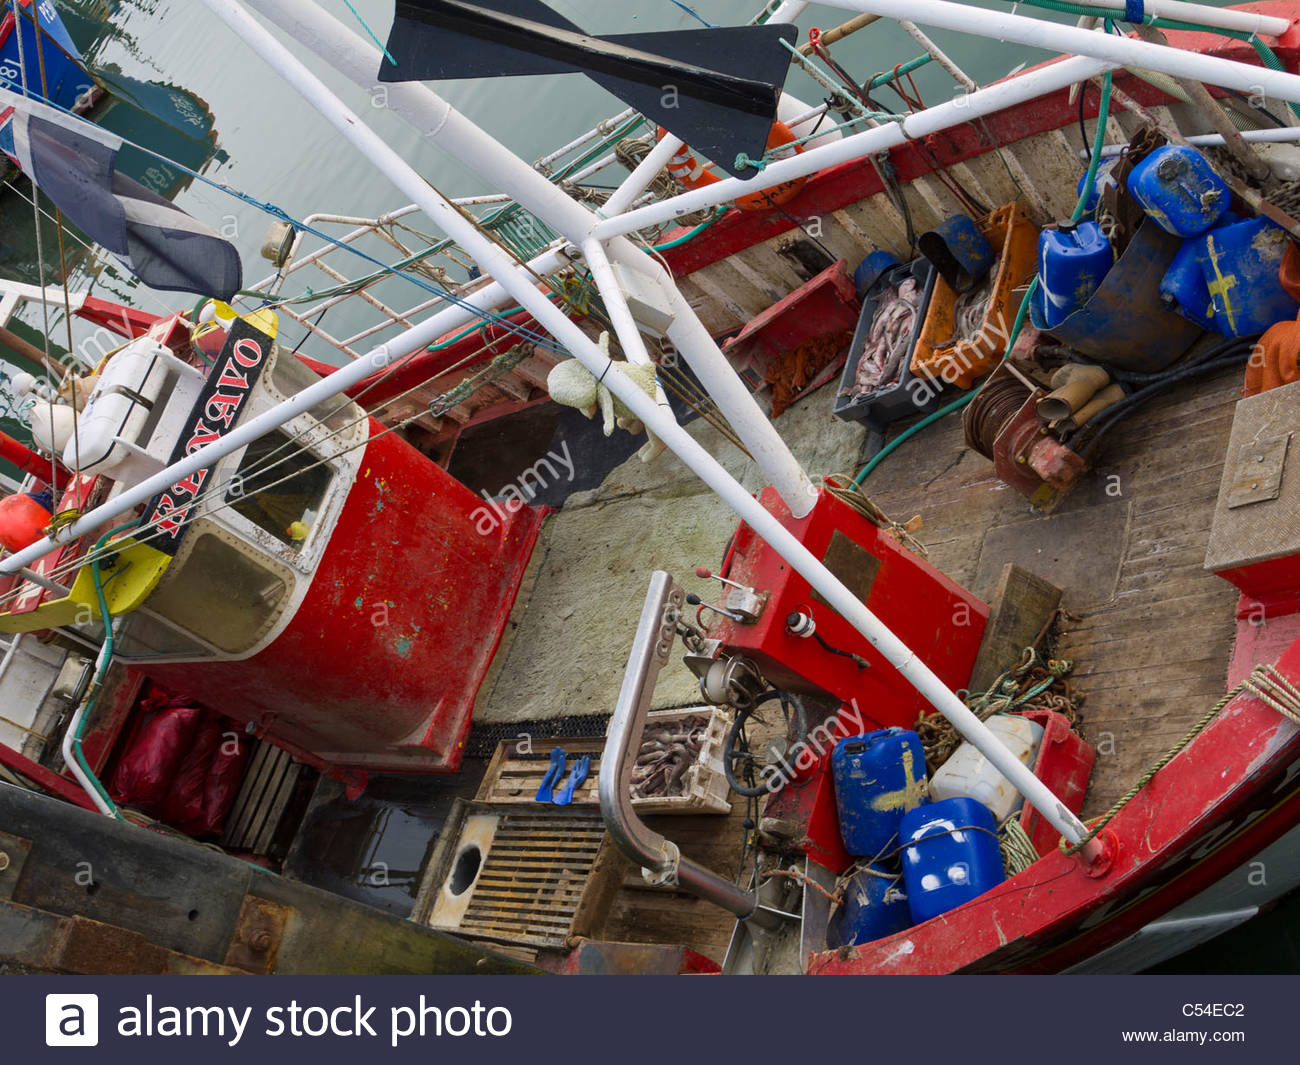 Portsmouth Southsea Deck of Fishing Boat - Stock Image